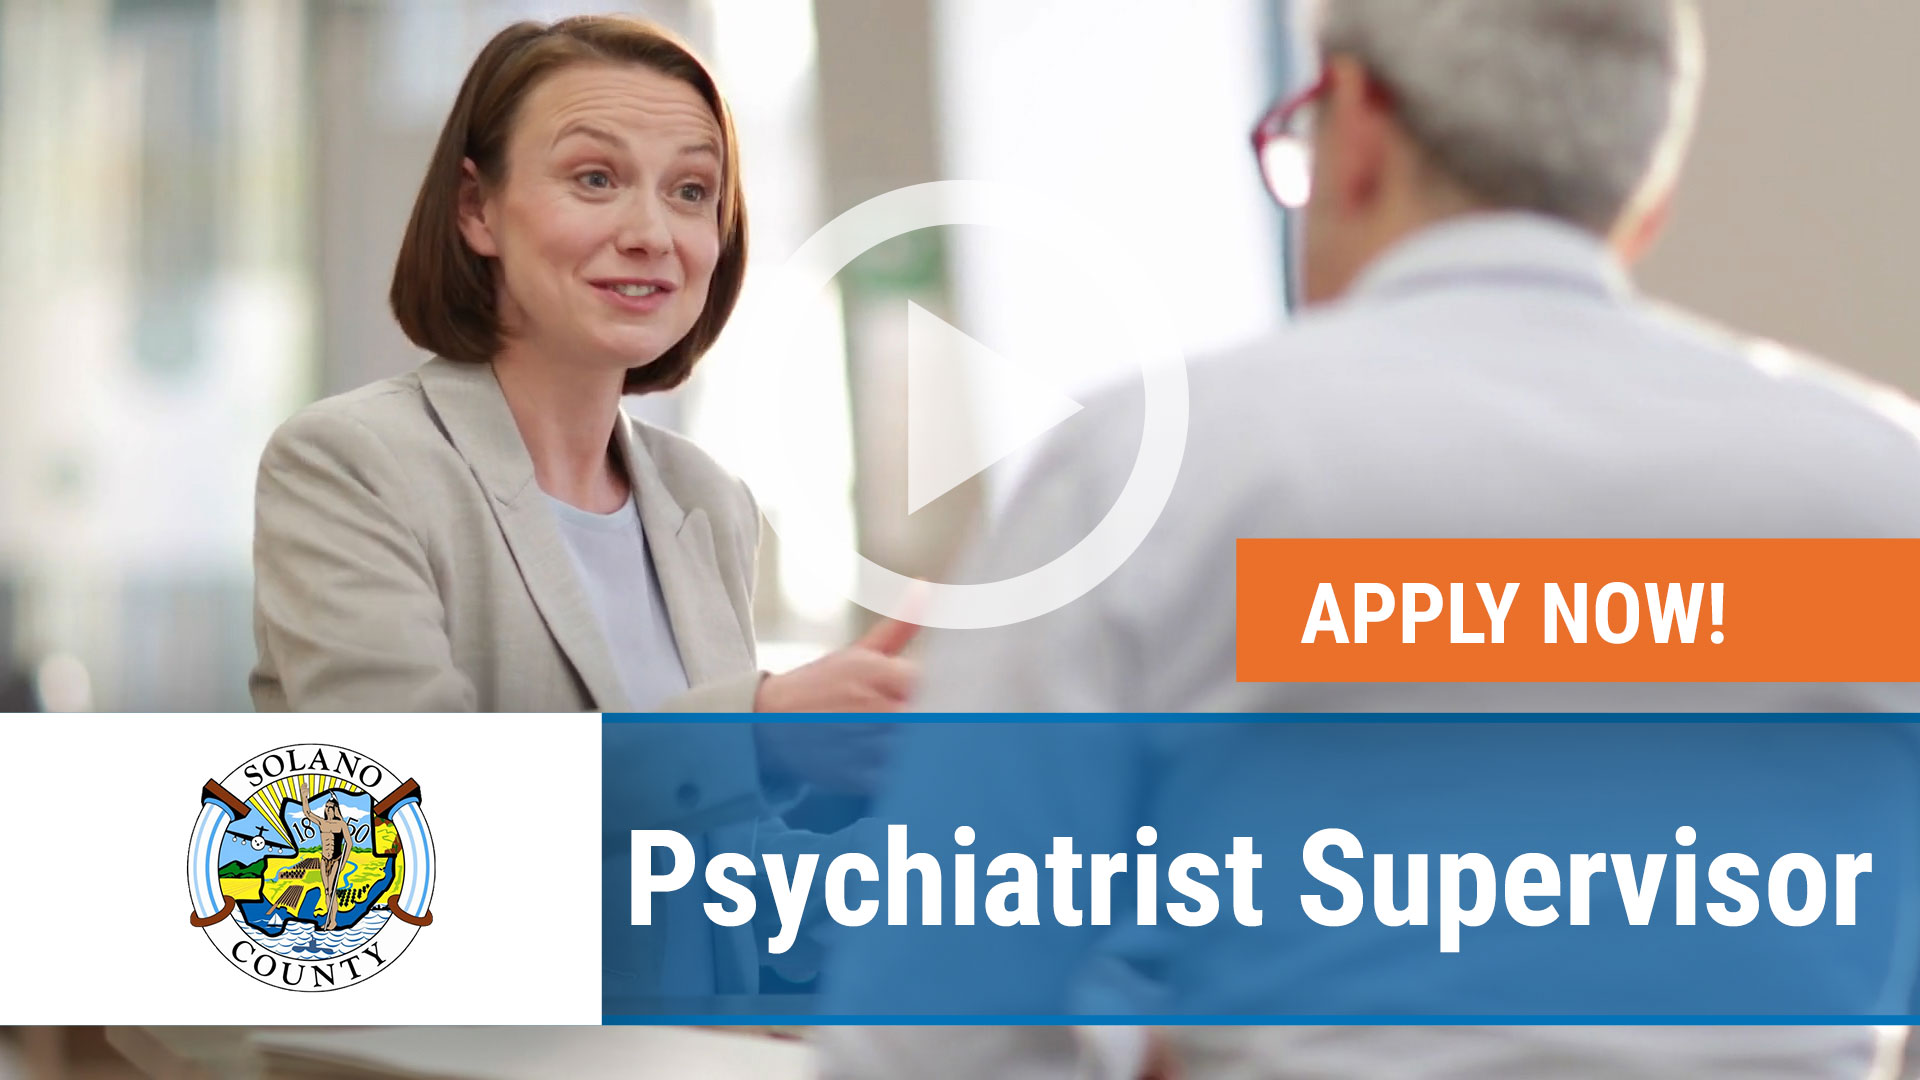 Watch our careers video for available job opening Psychiatrist Supervisor in Fairfield, California